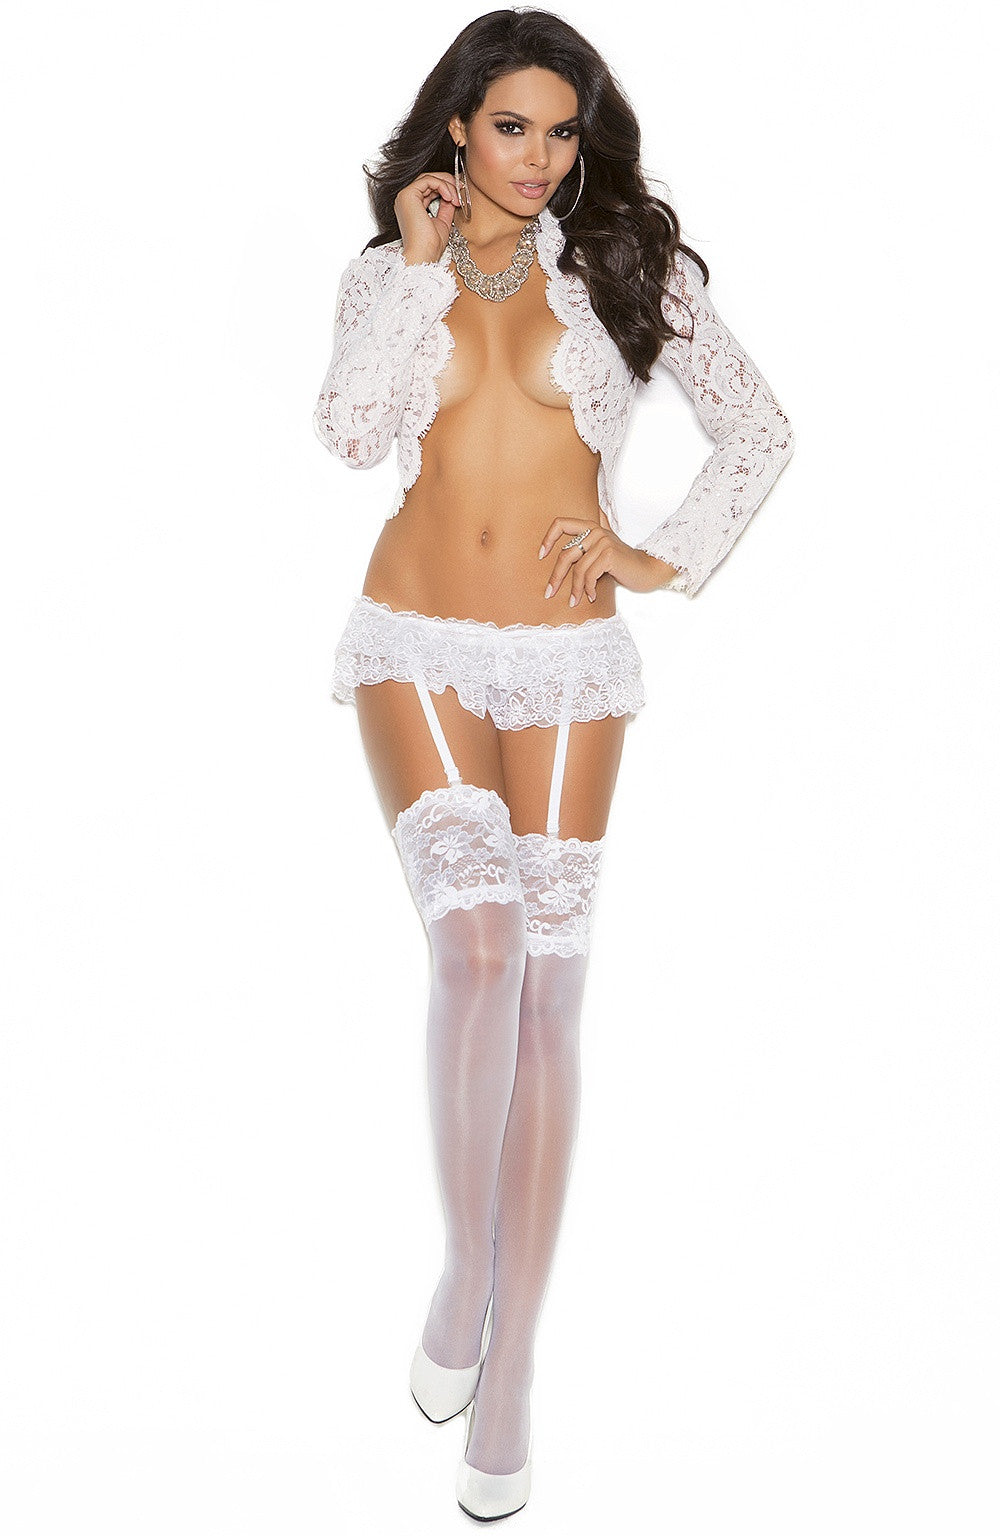 EM-1836 White weddings stockings - Sexylingerieland  - 1